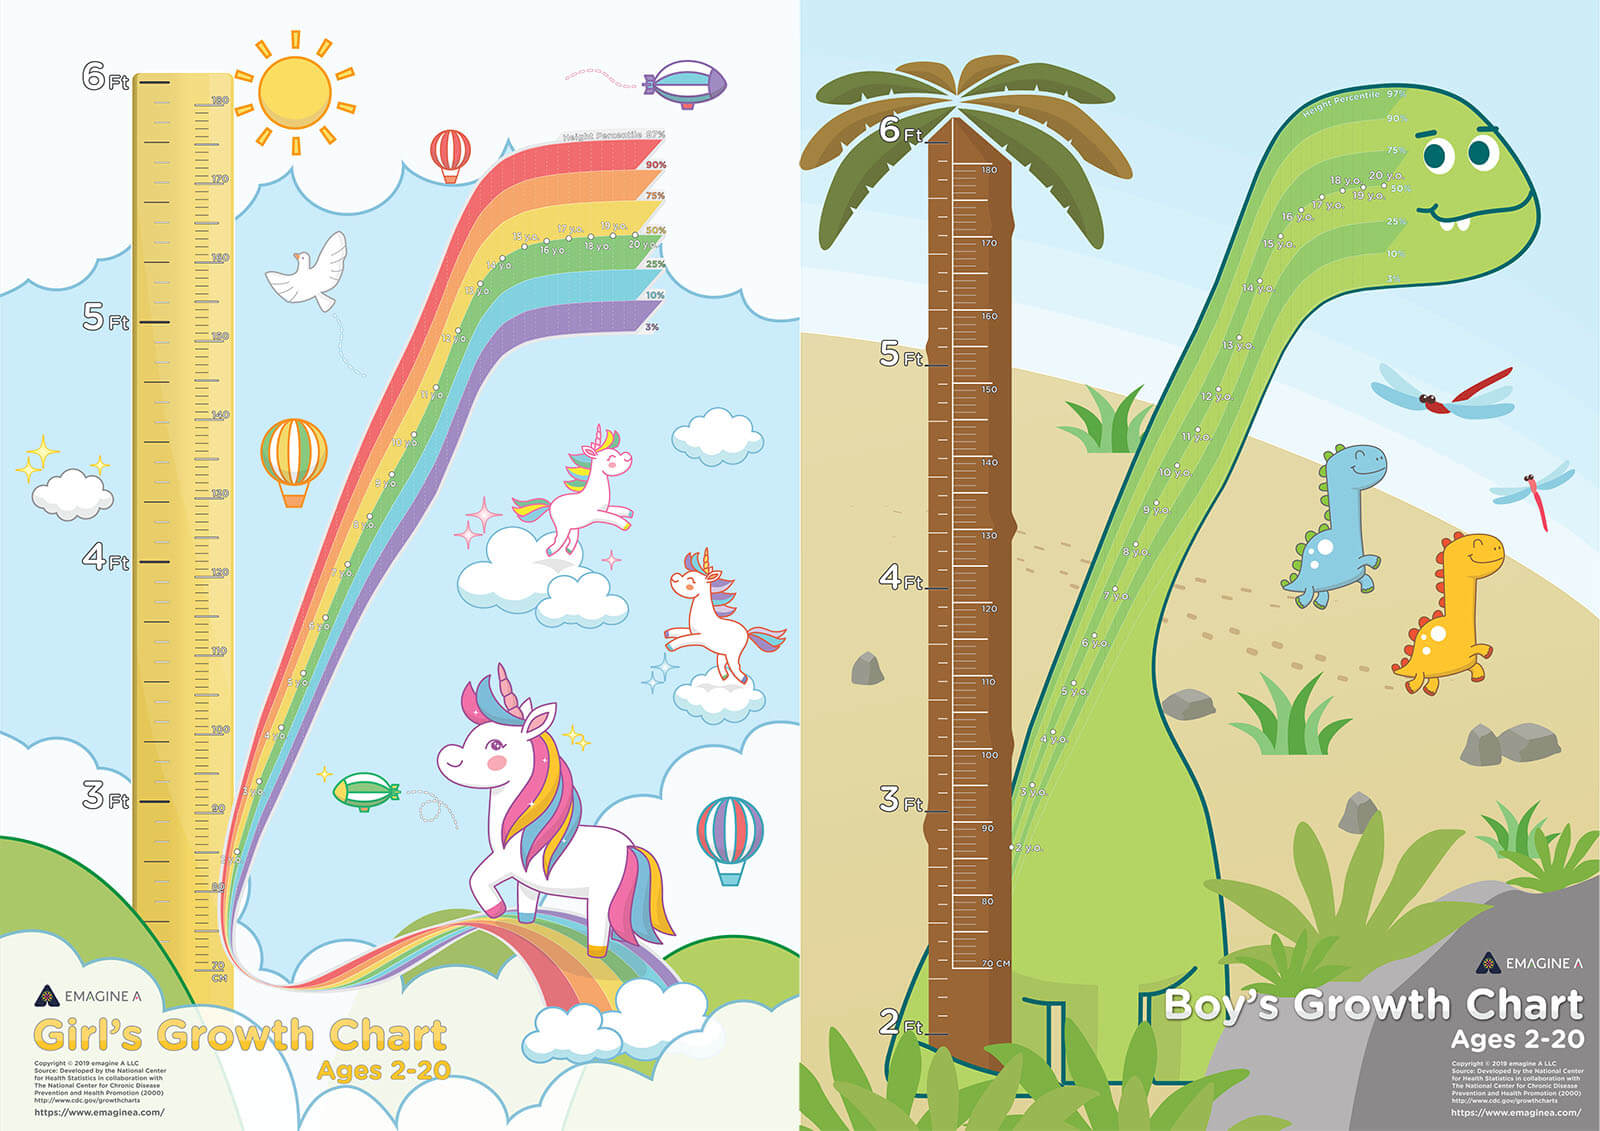 Growth Charts - Reading Beyond Average Height